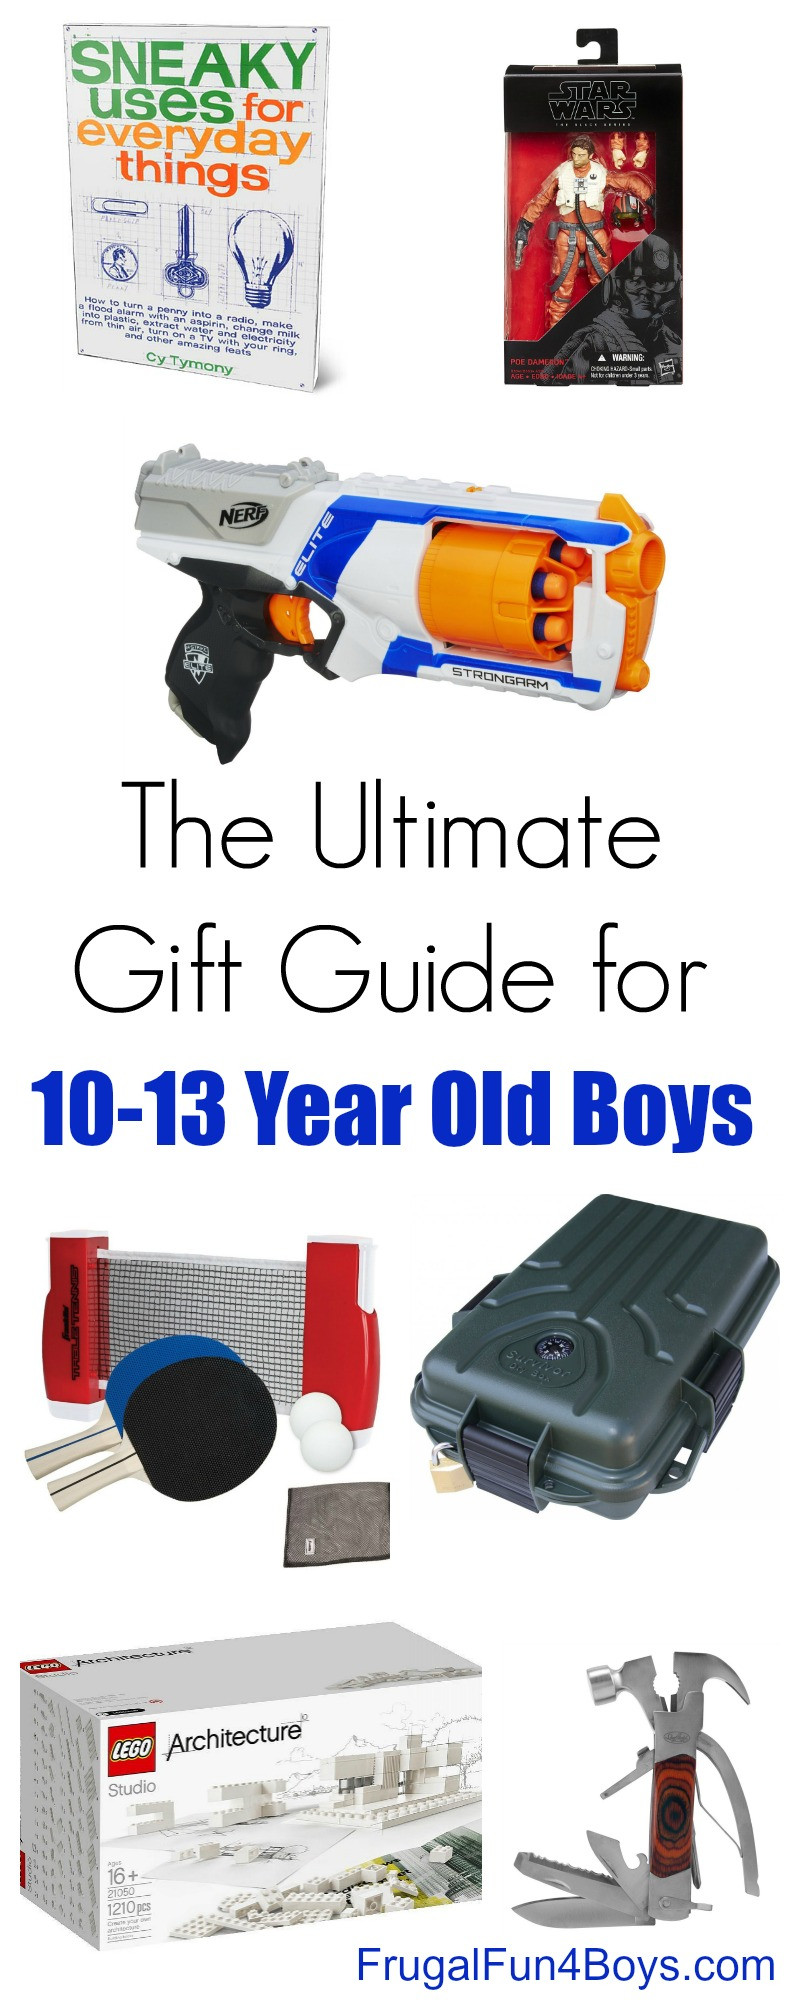 Best ideas about Good Birthday Gifts For 13 Year Old Boy . Save or Pin Gift Ideas for 10 to 13 Year Old Boys Now.